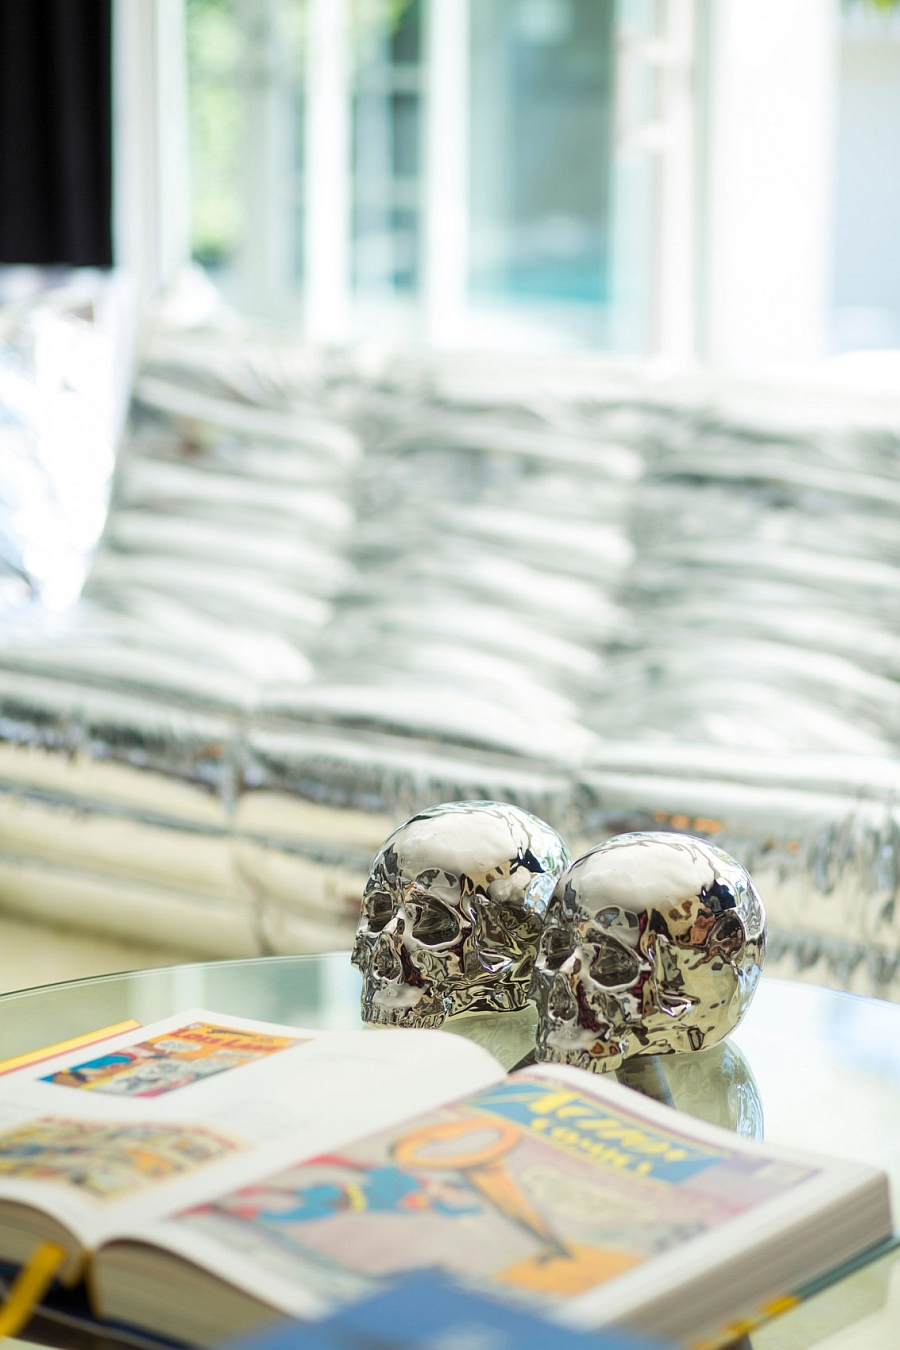 Interesting silver metallic skulls on the living room coffee table!